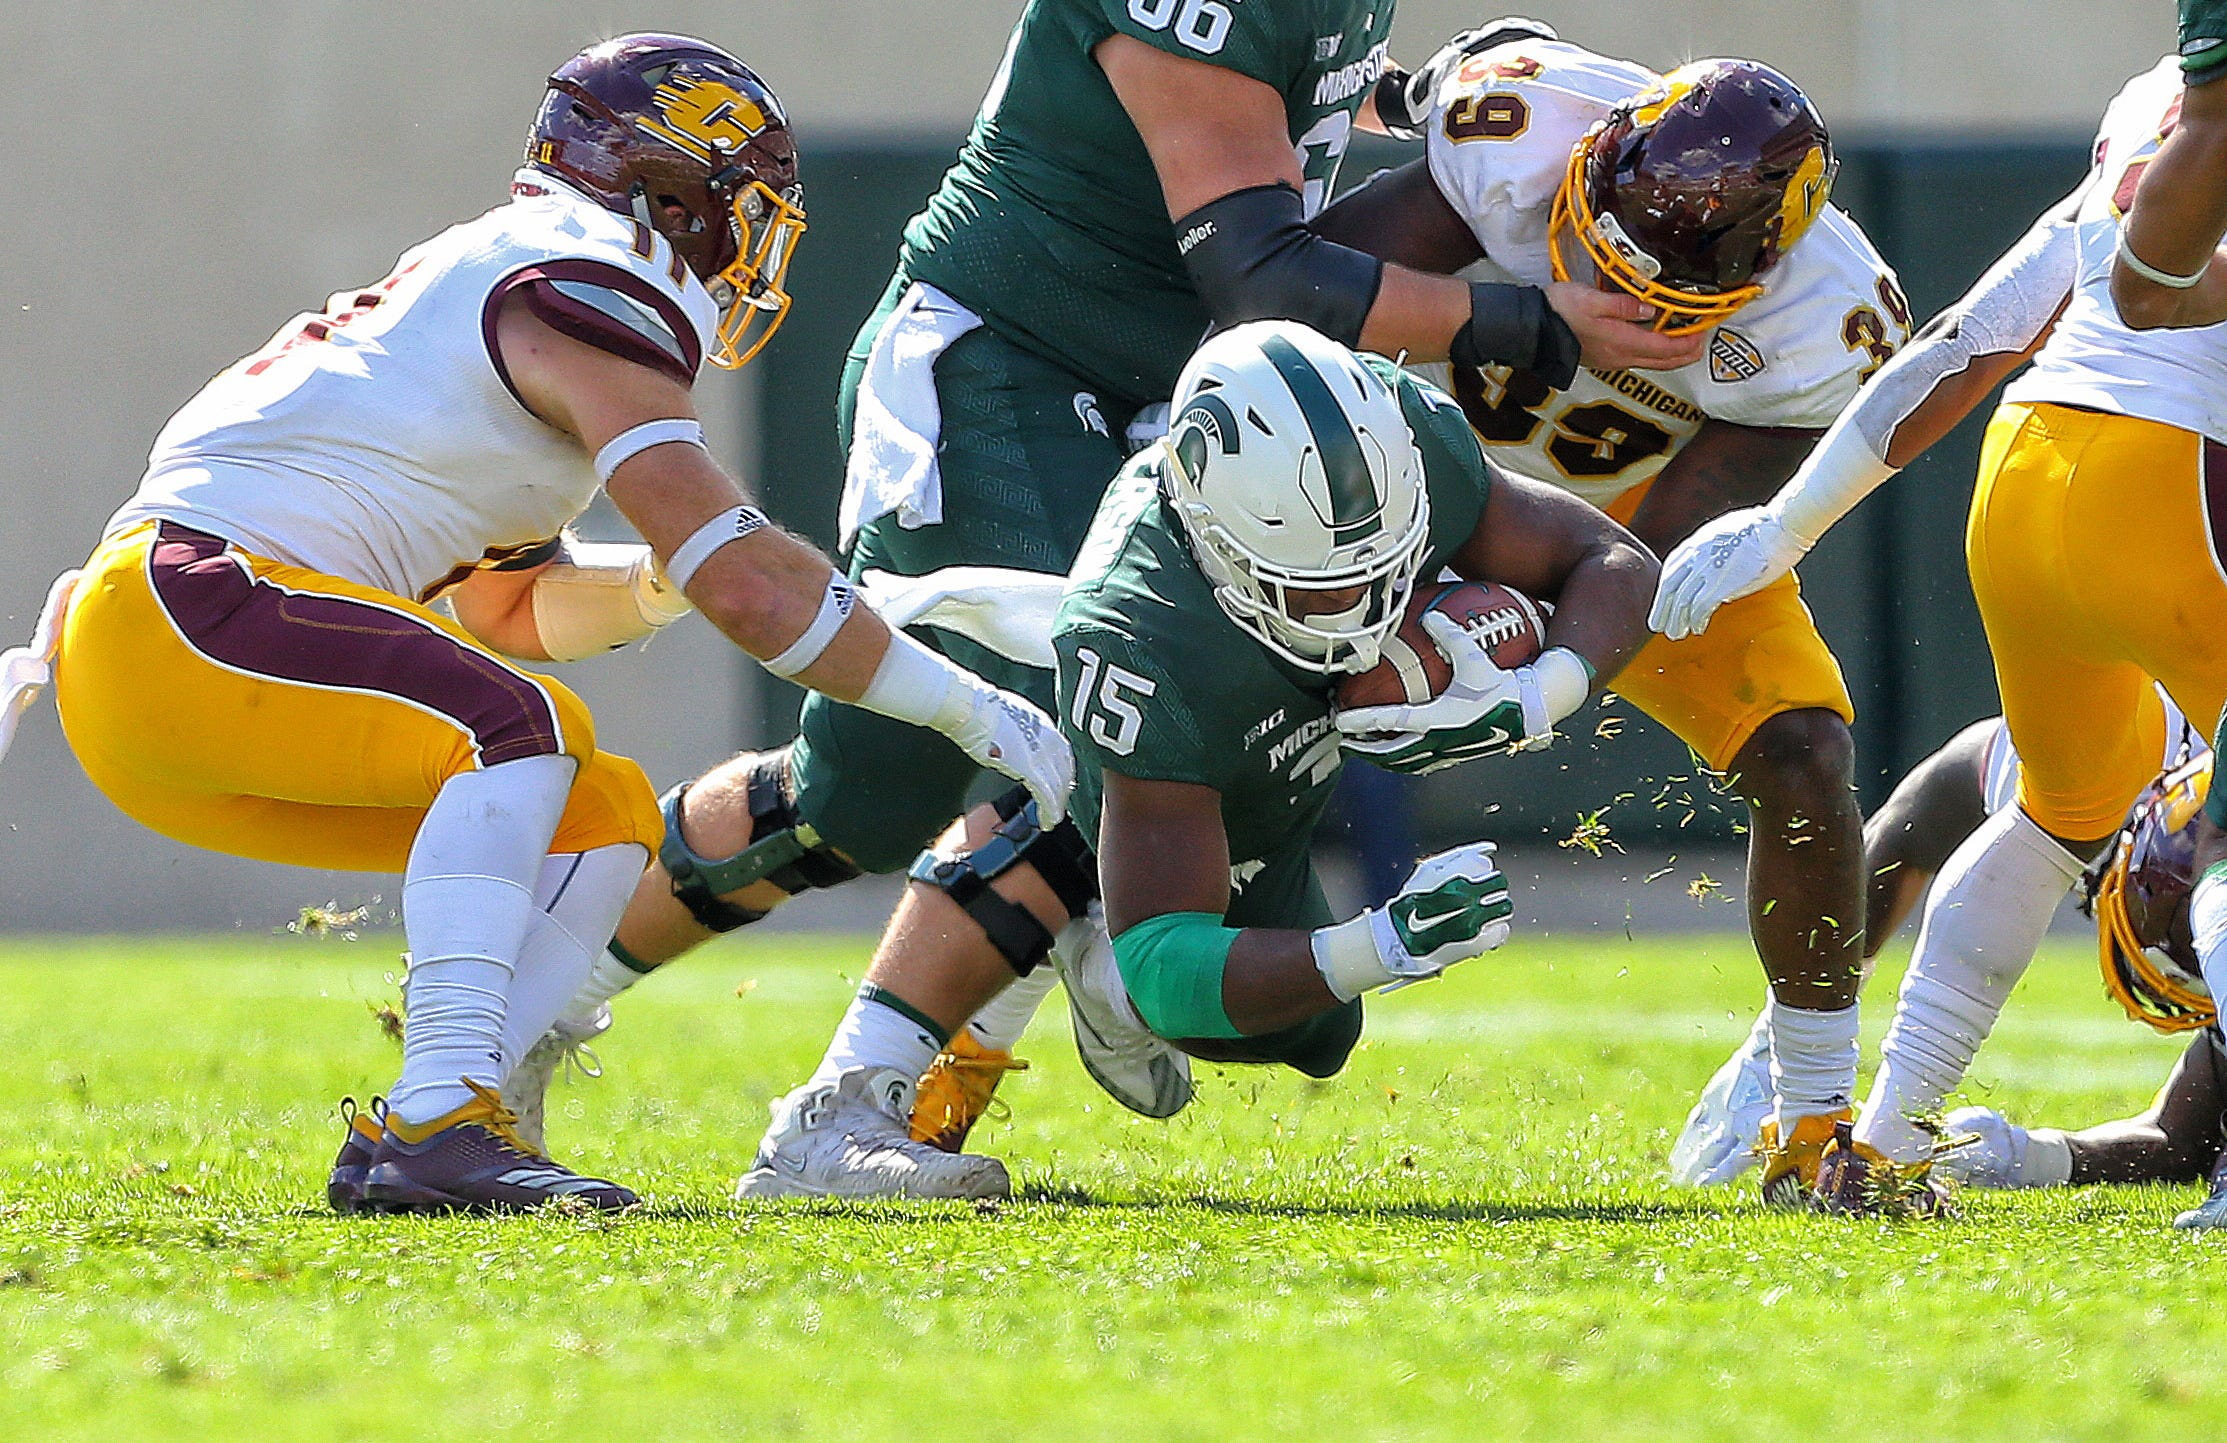 Michigan State running back La'Darius Jefferson is tripped against Central Michigan during the first half on Saturday, Sept. 29, 2018, at Spartan Stadium.